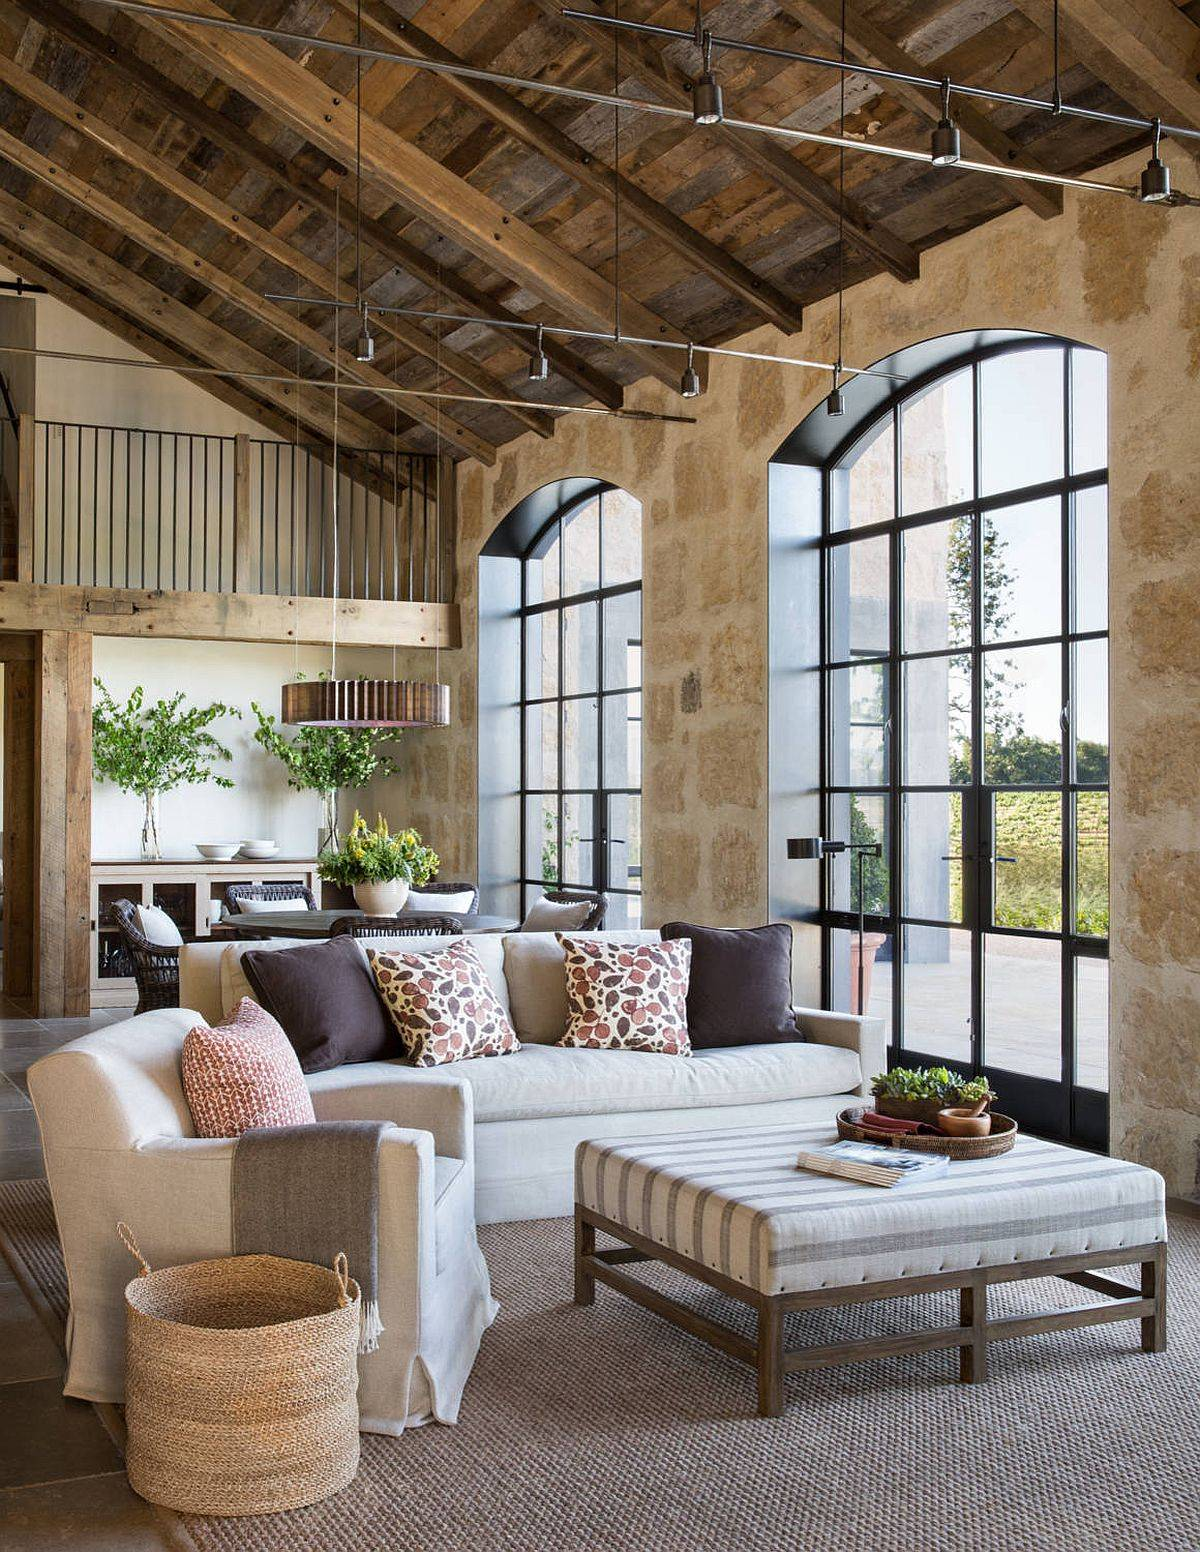 Double-height-farmhouse-style-living-area-with-stone-walls-and-wooden-ceiling-40720